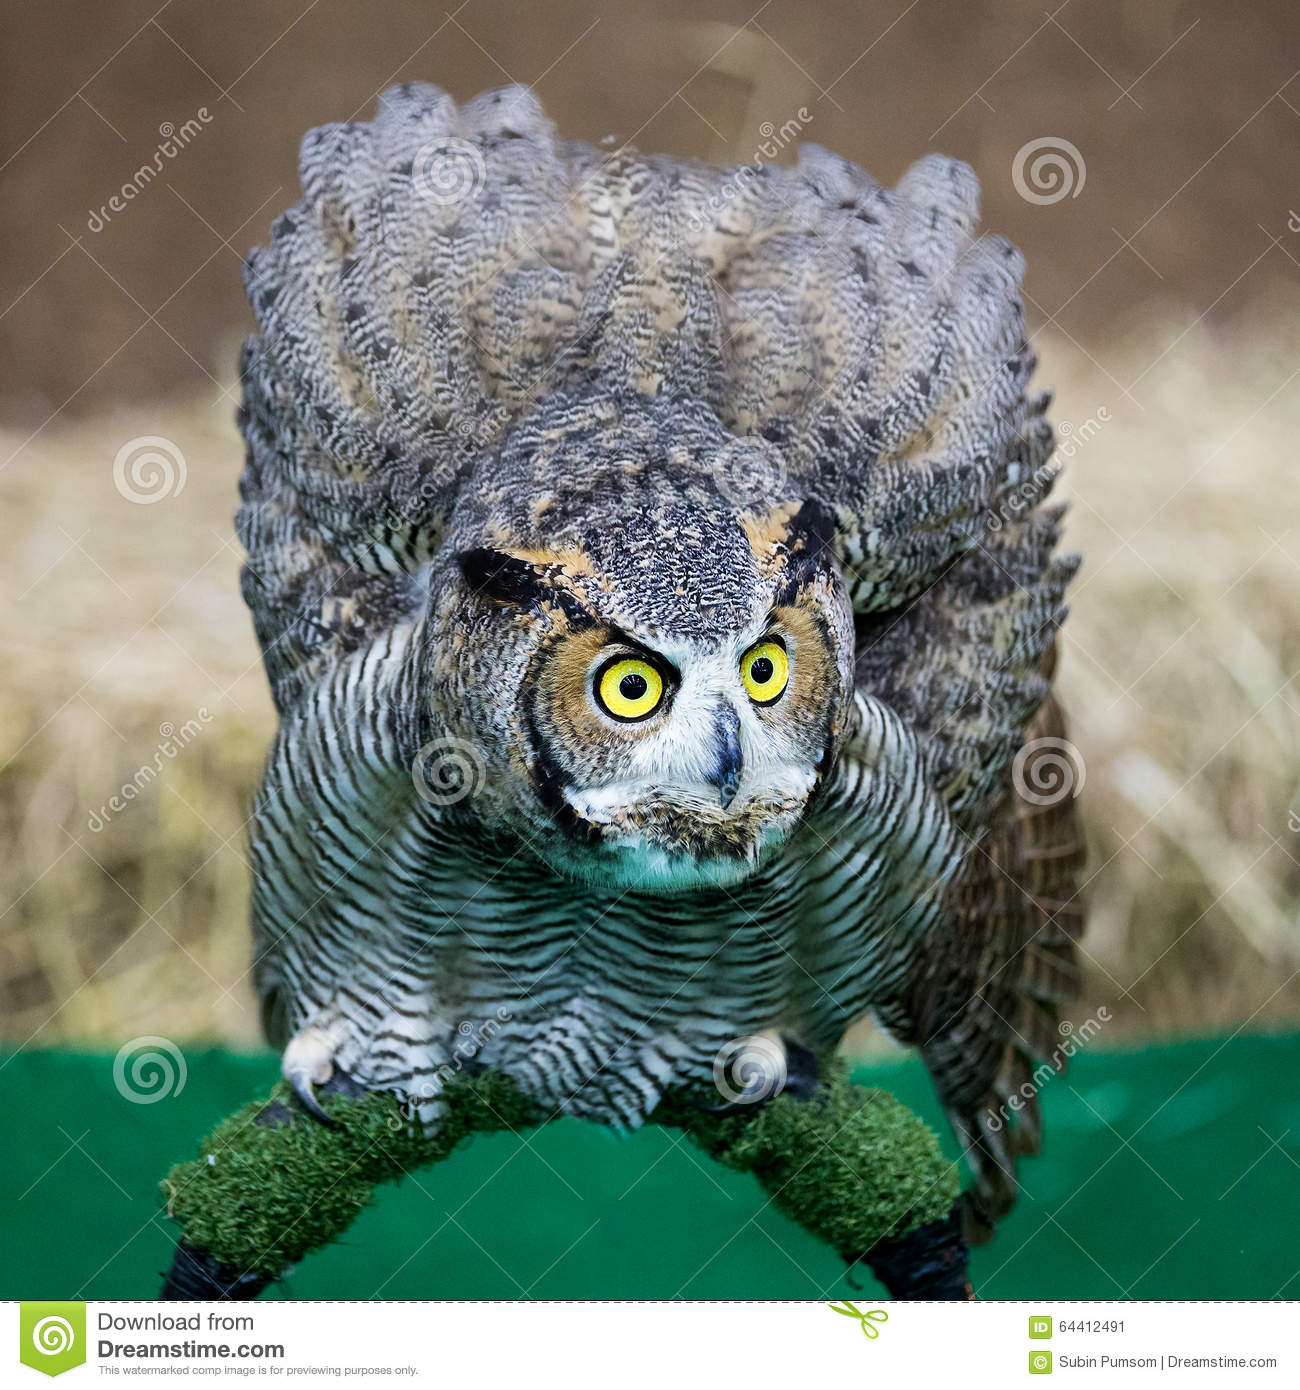 De adelaarsuil van Eagle Owl /An